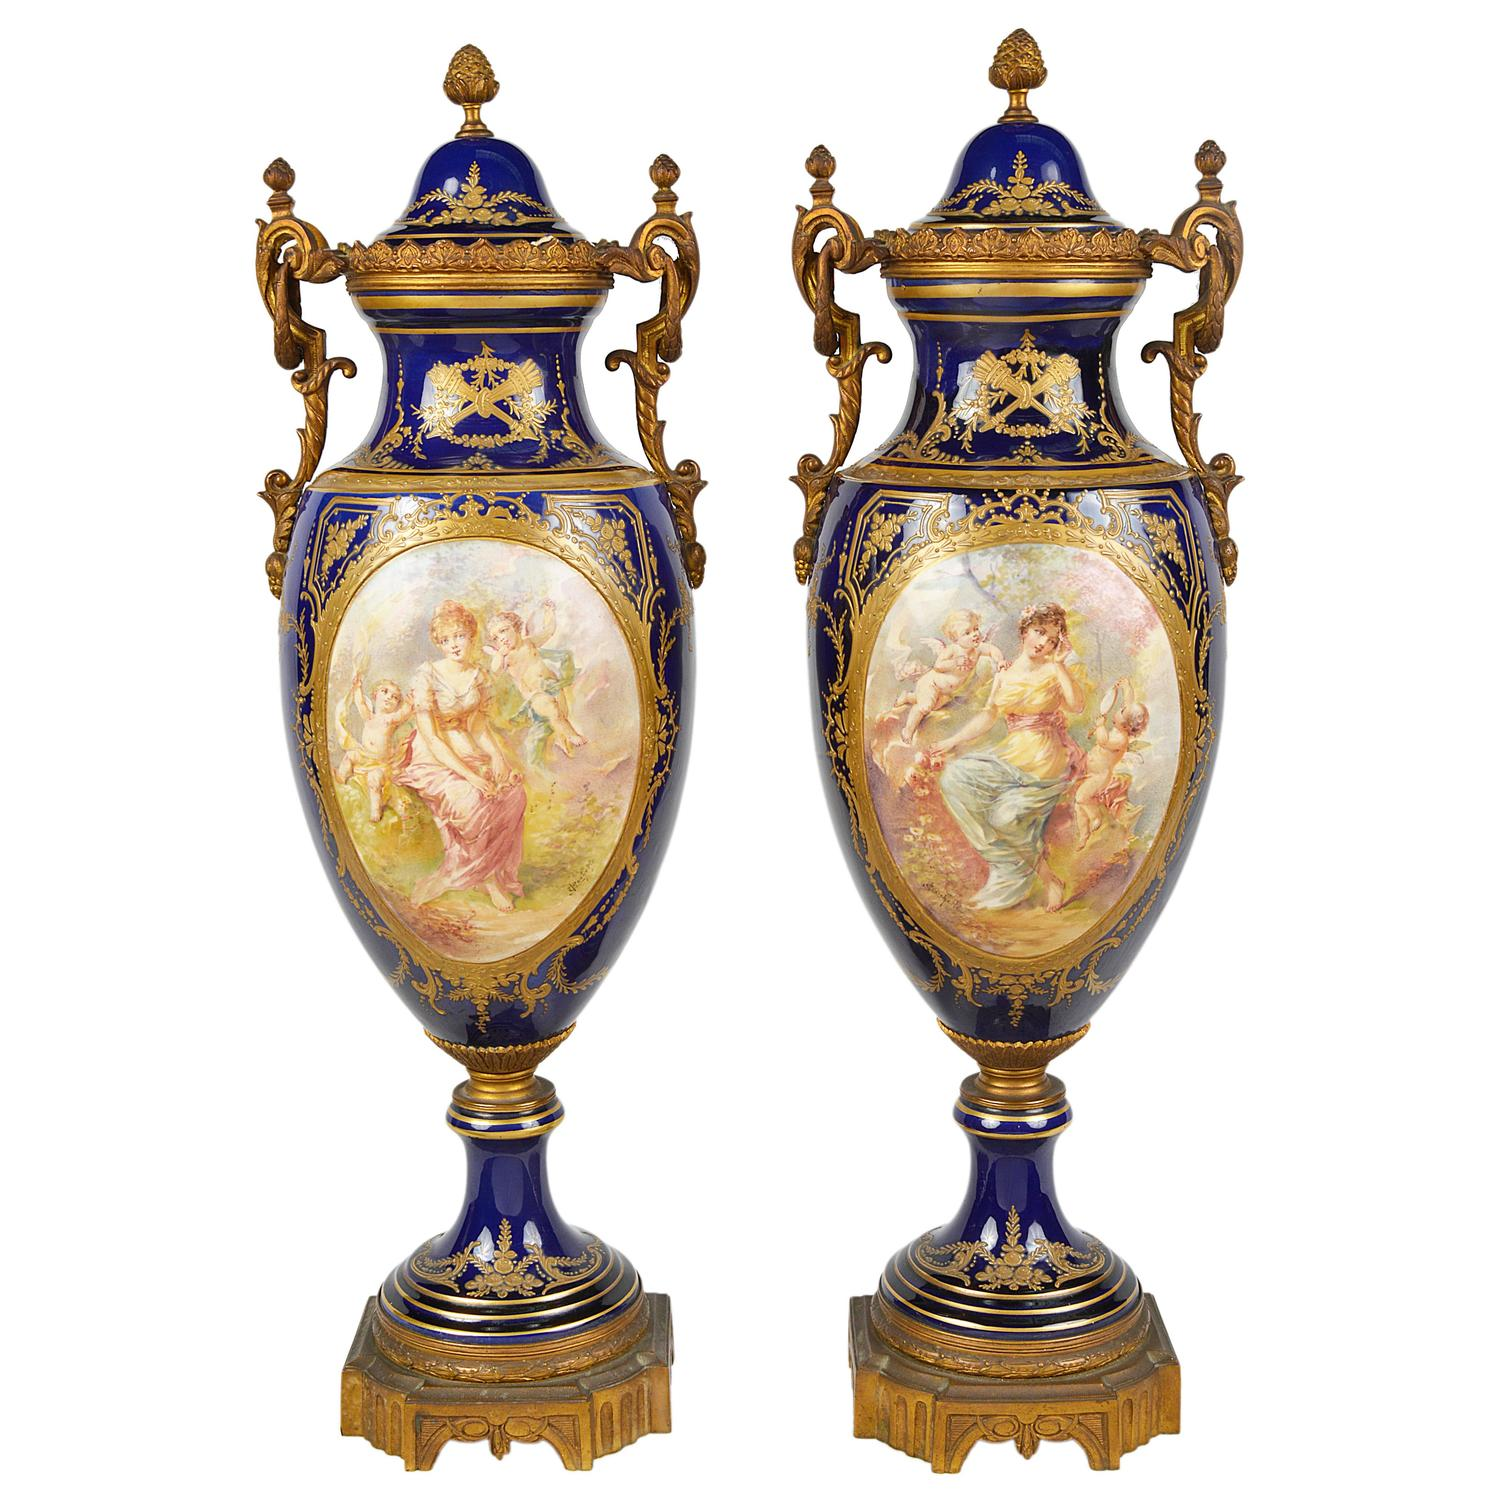 Pair of french sevres style louis xiv porcelain vases at 1stdibs pair of 19th century svres style porcelain vases reviewsmspy